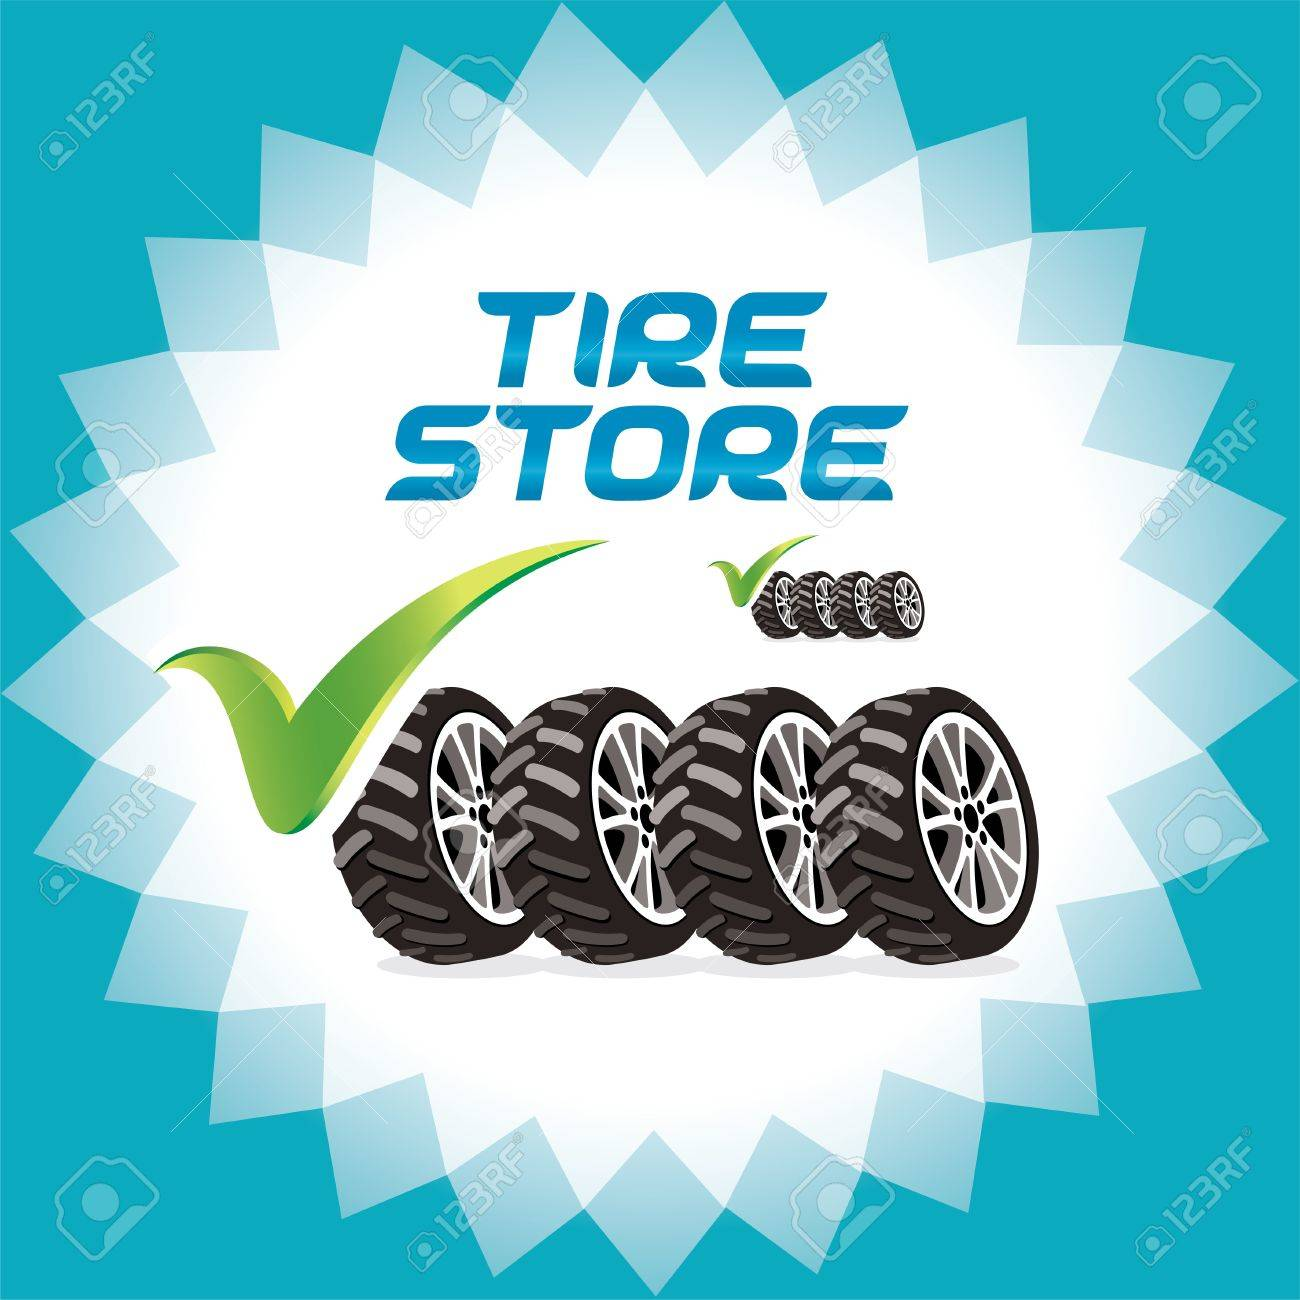 Four Wheels Accept Icons, Logo Illustration for Web and Print Design Stock Vector - 15743164